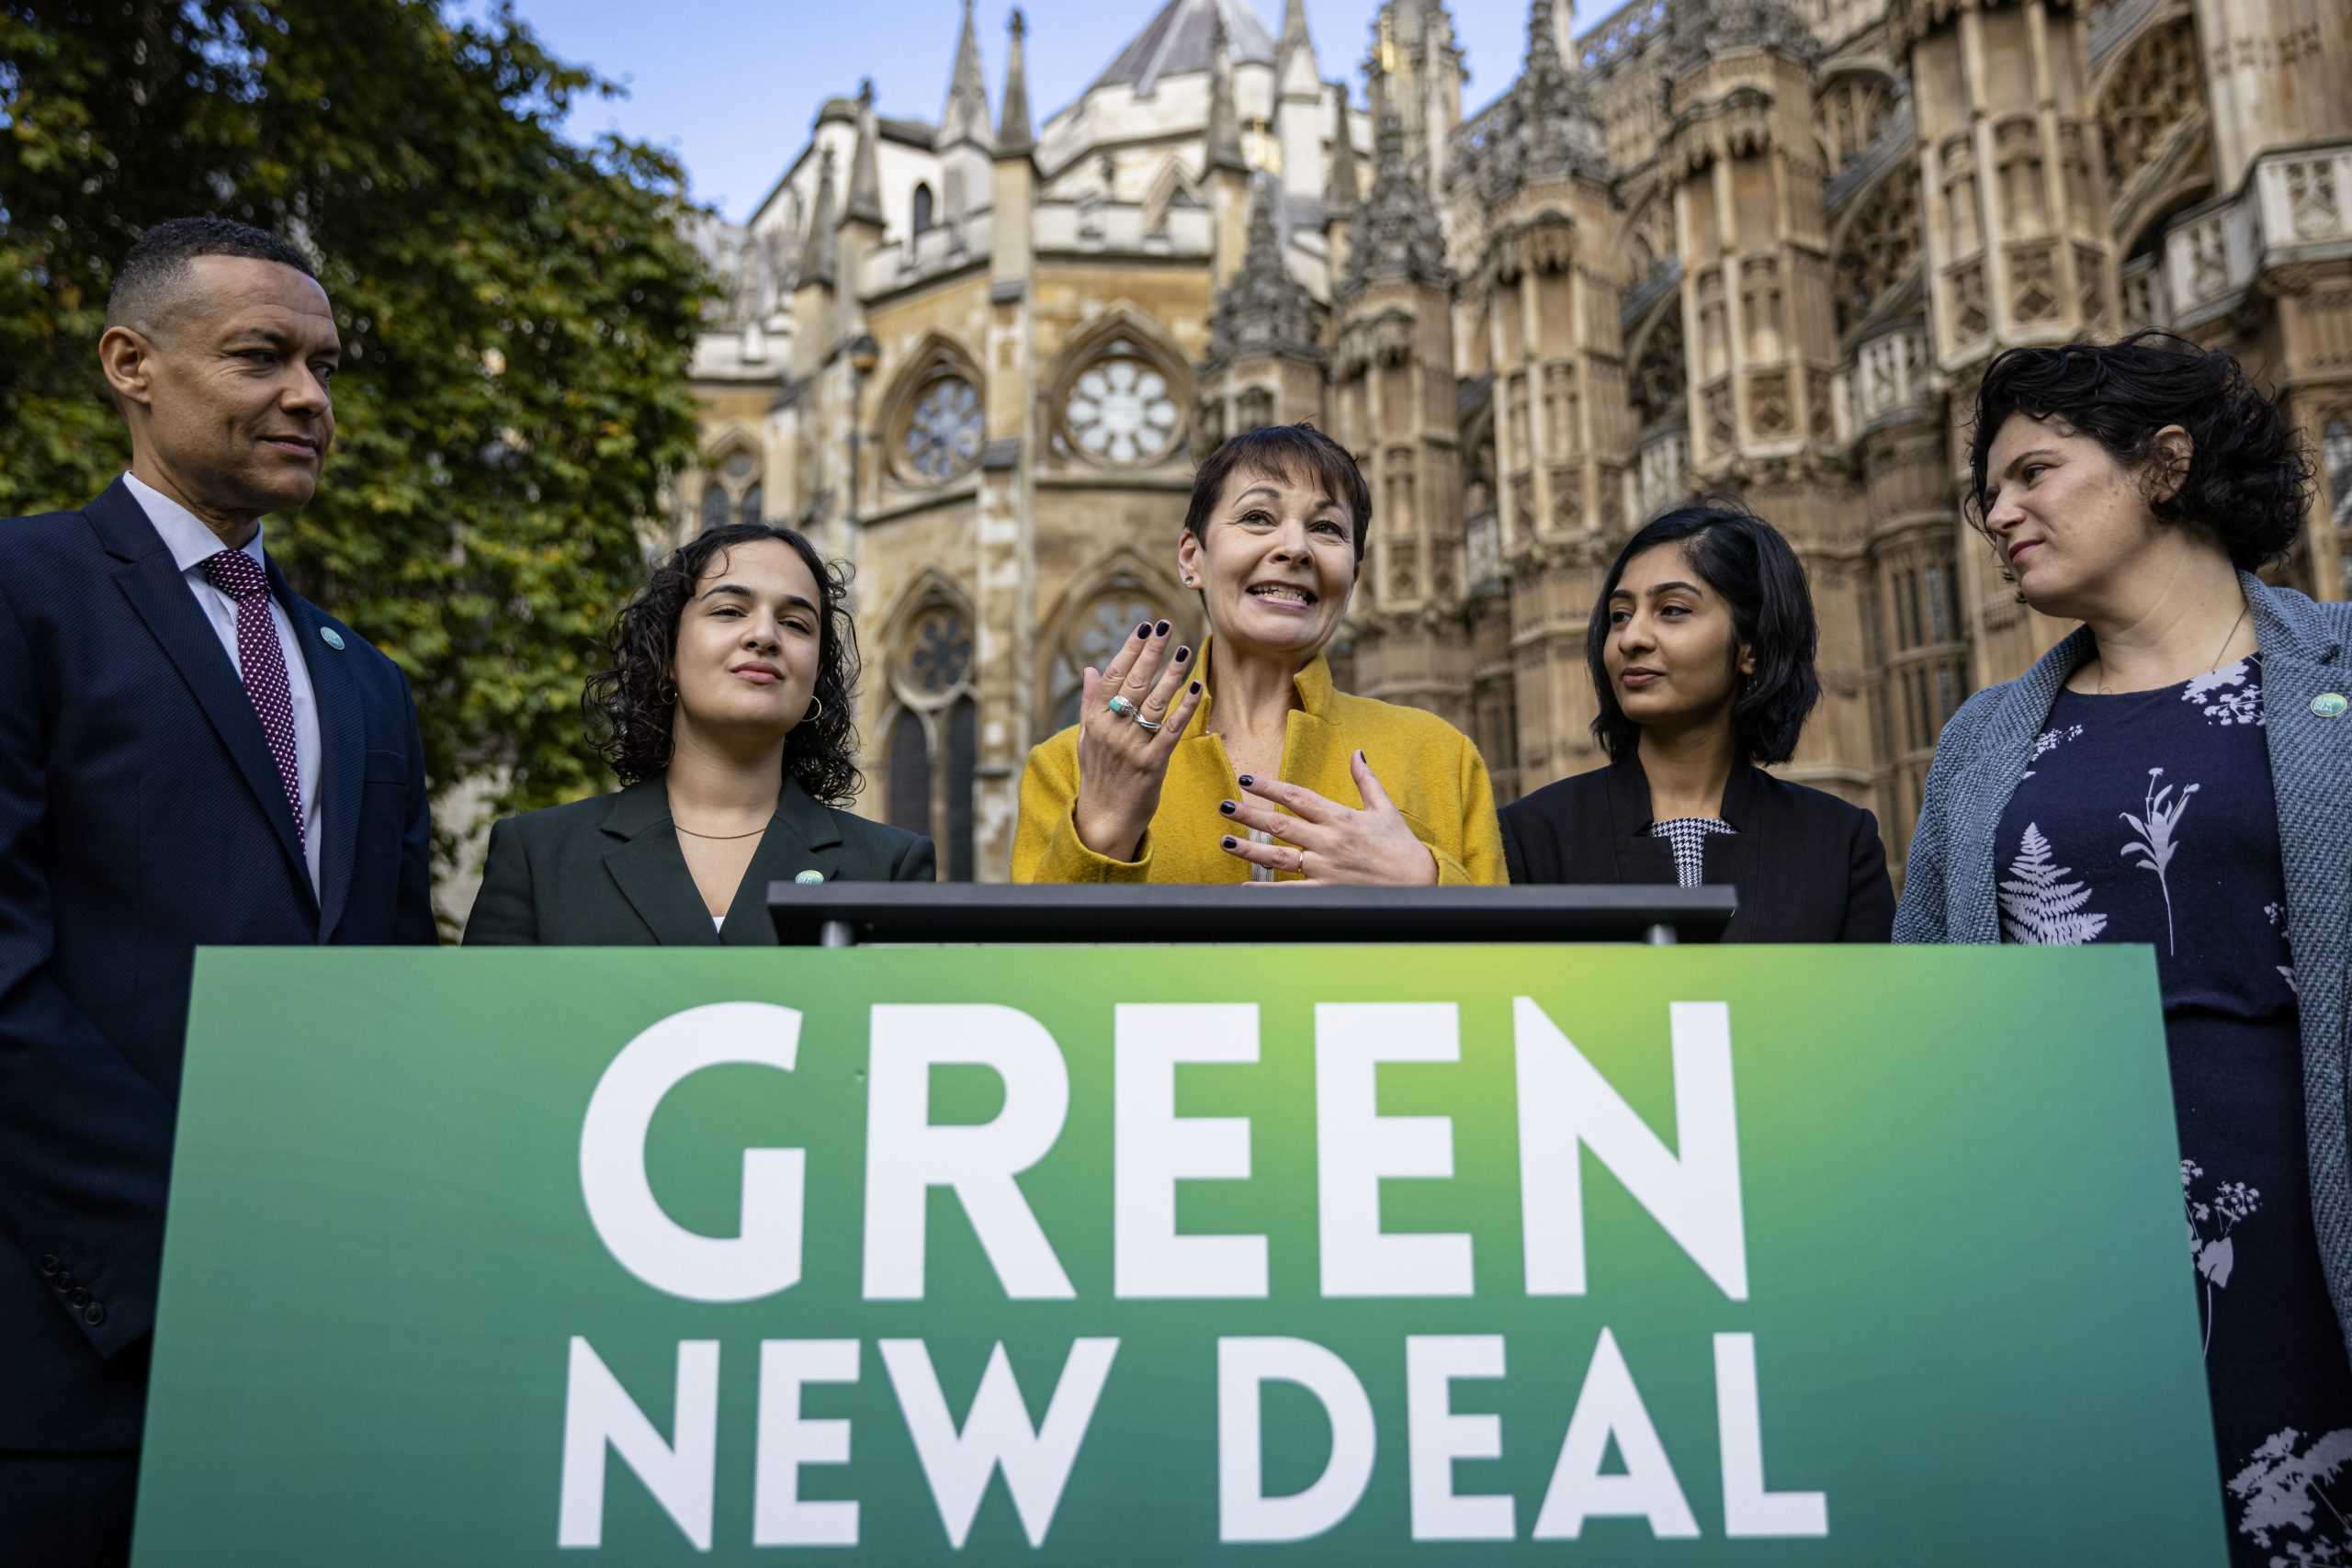 Caroline Lucas and colleagues speak at the launch of the Green New Deal Bill